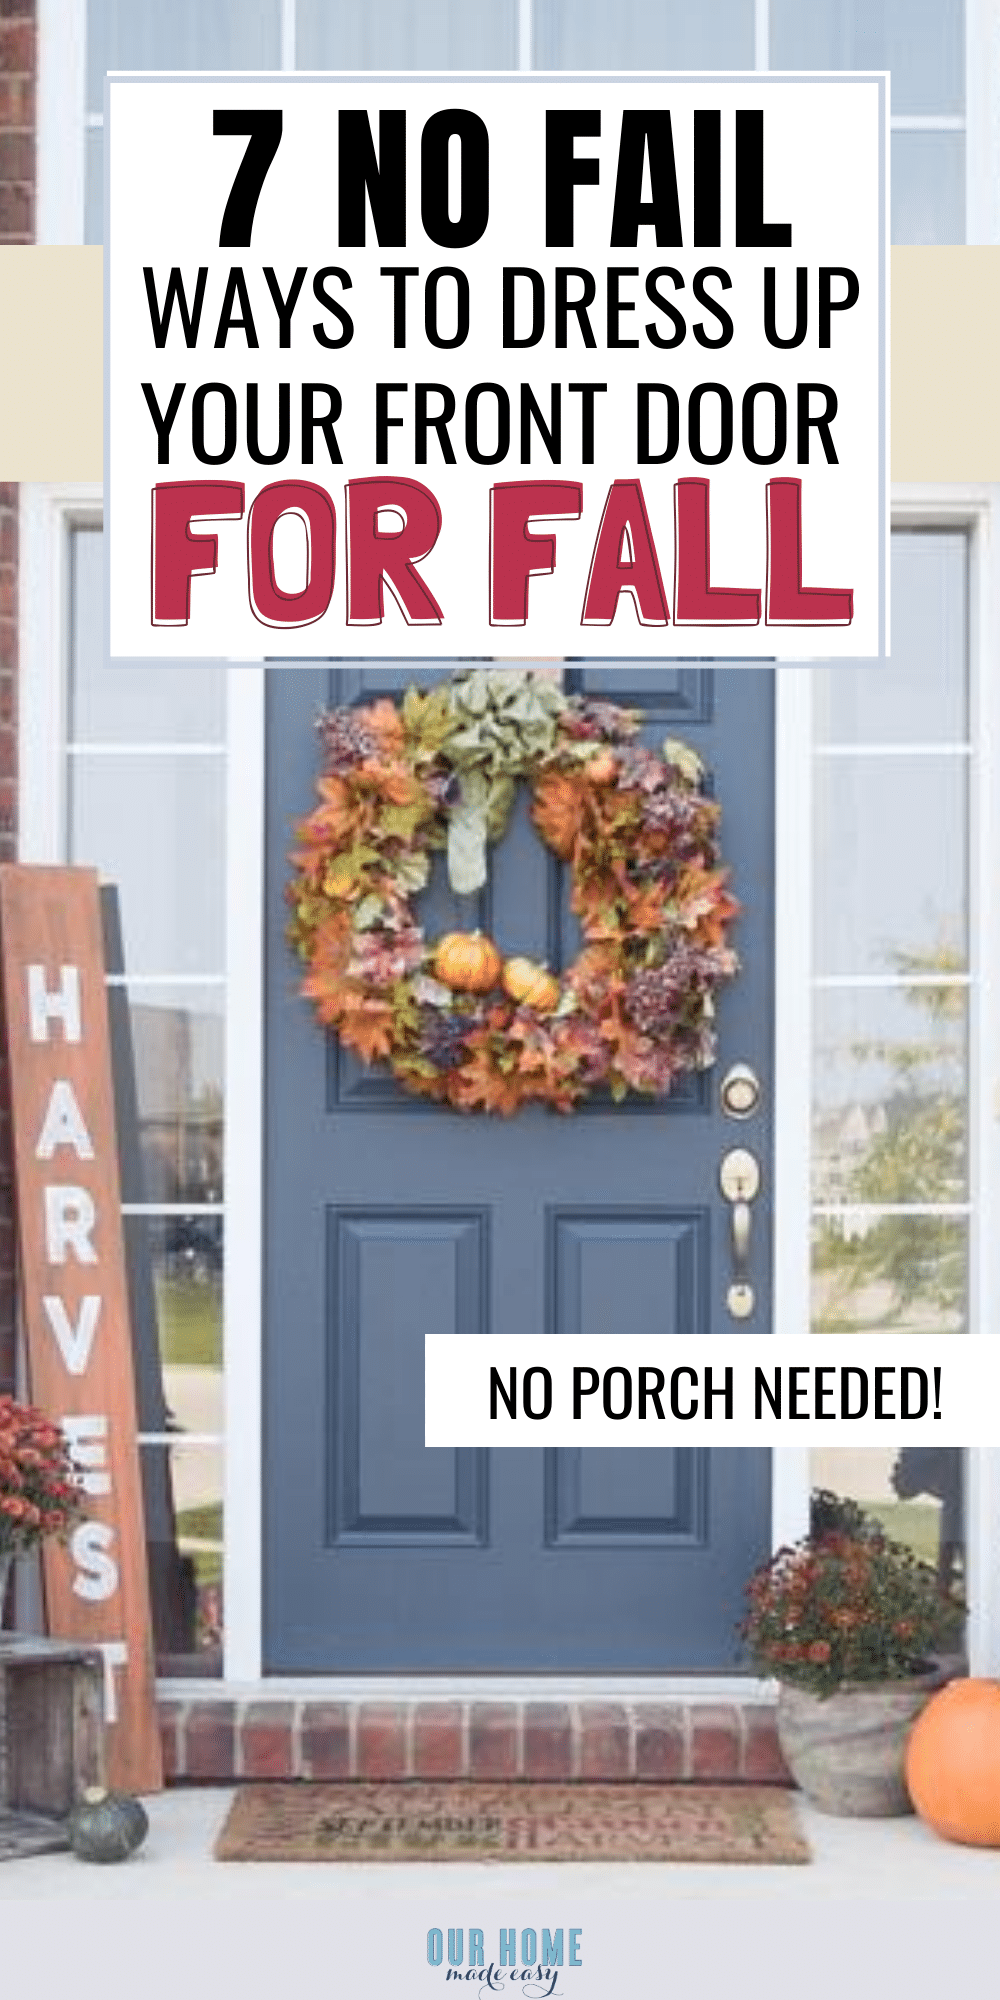 Make your home feel welcoming with these super simple Fall front door ideas! No worries about if you don't have a full porch, these ideas will make your front door look amazing no matter what your style is!!